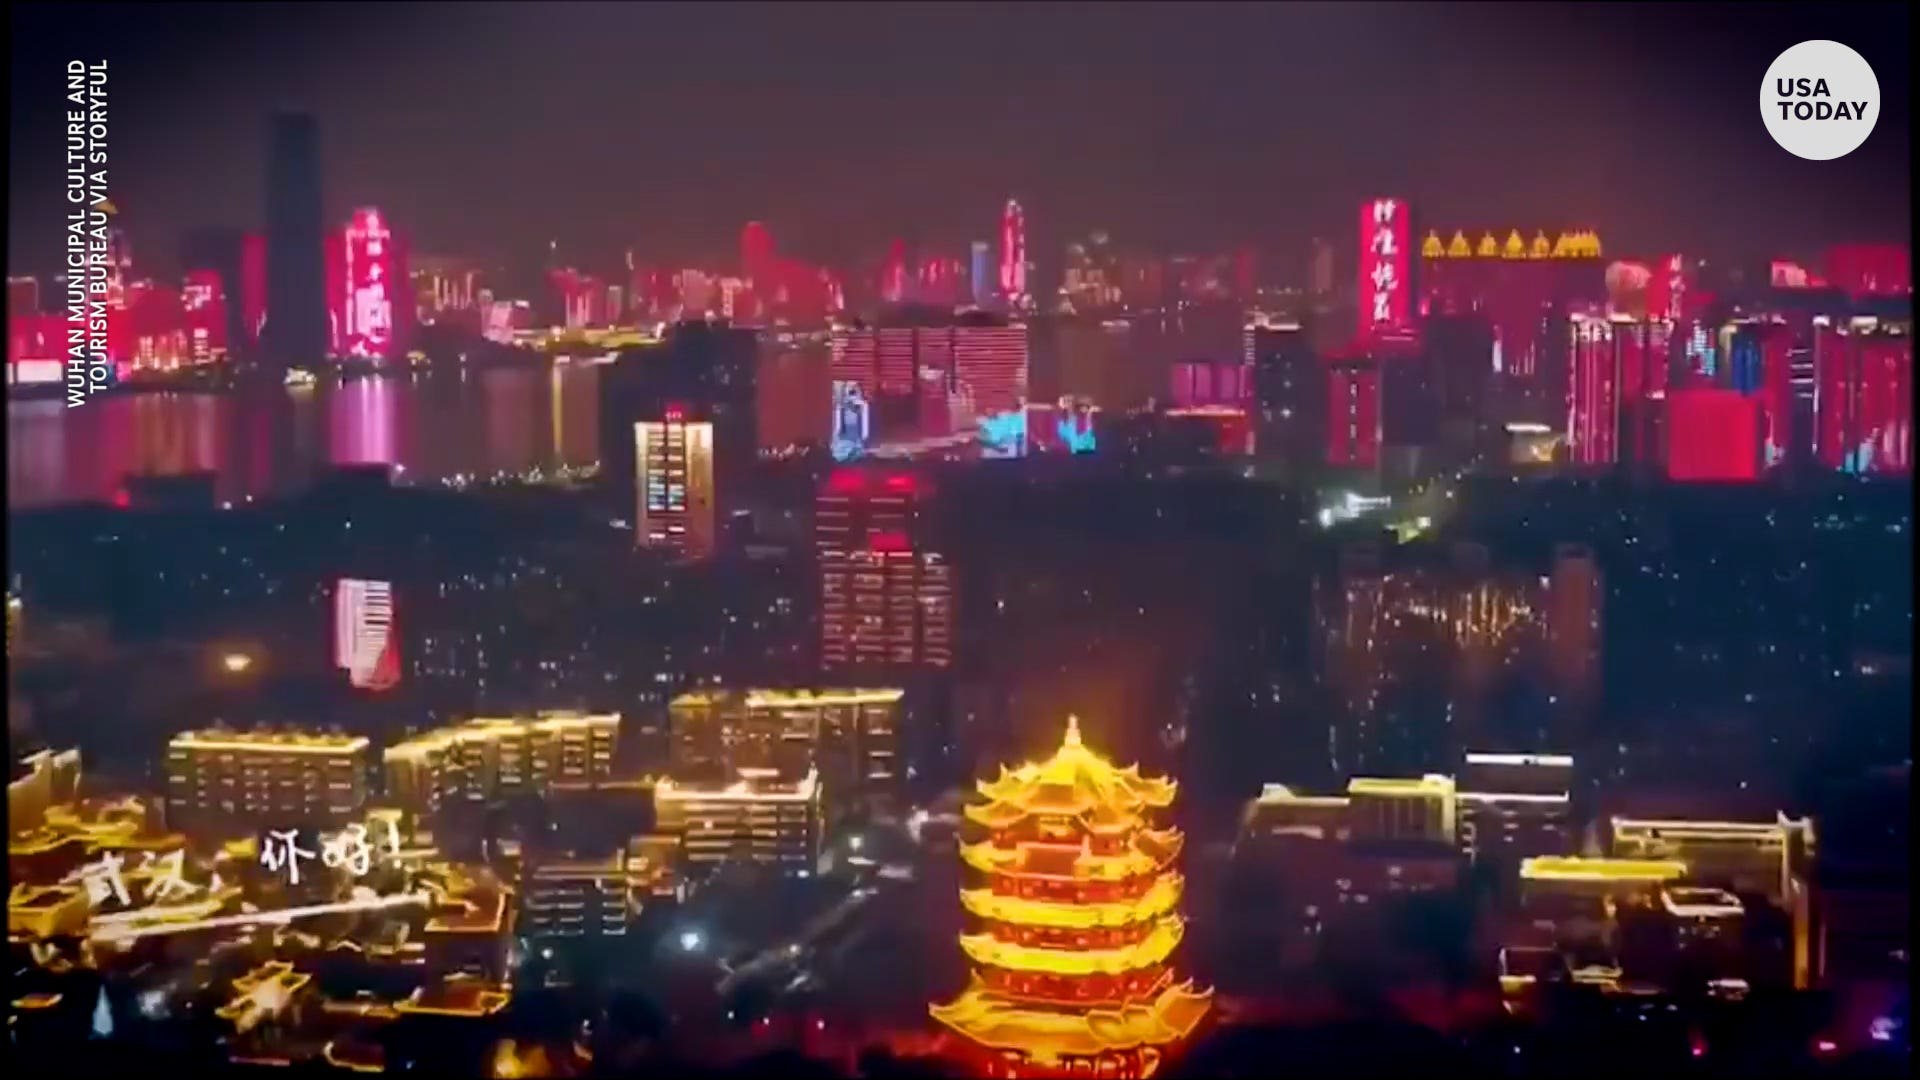 Wuhan, China lights up the night after 76 days of COVID-19 lockdown